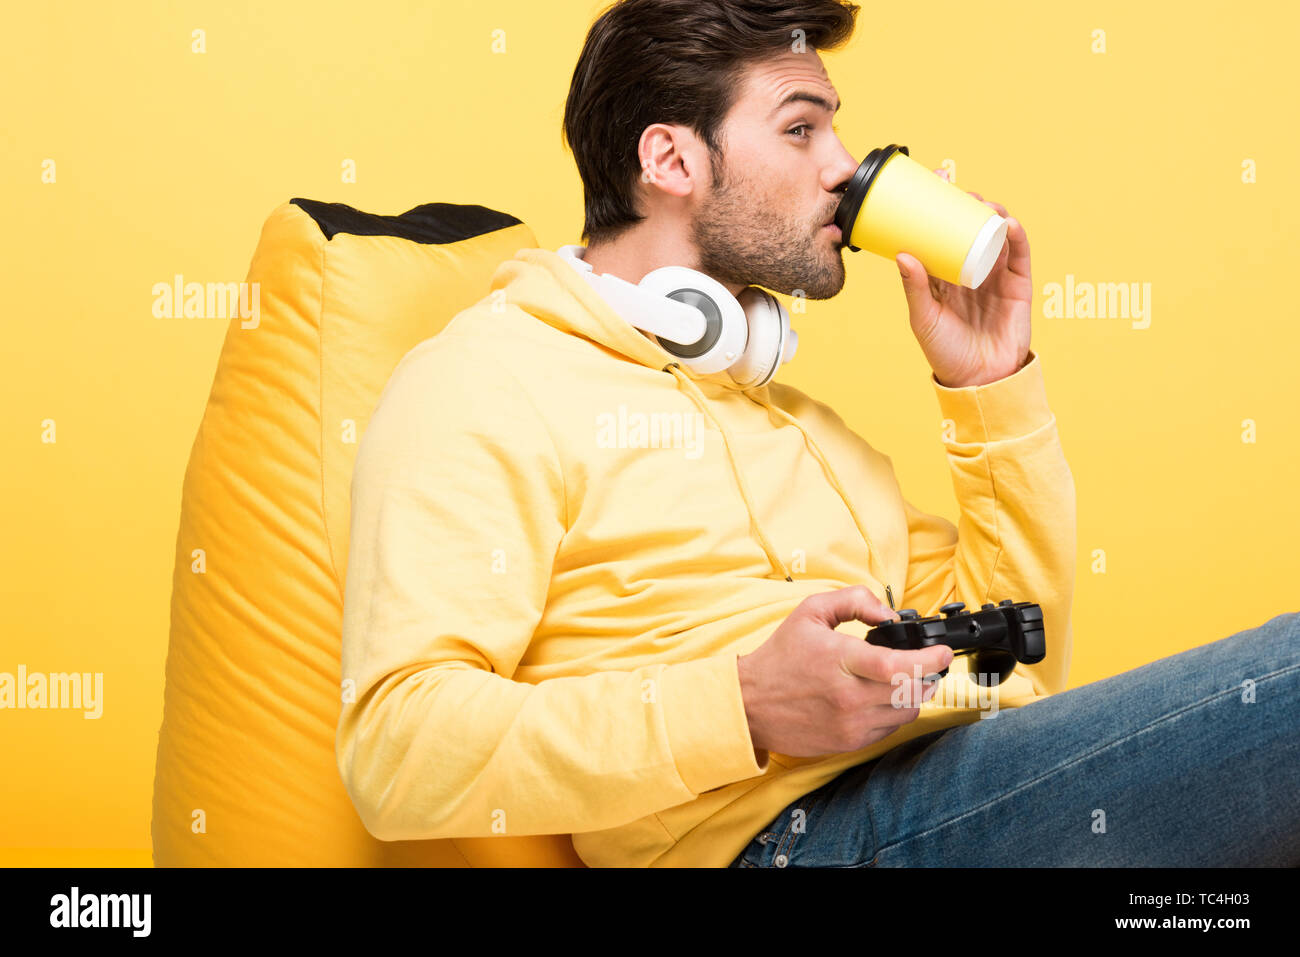 man drinking coffee to go on bean bag chair and playing Video Game Isolated On yellow - Stock Image